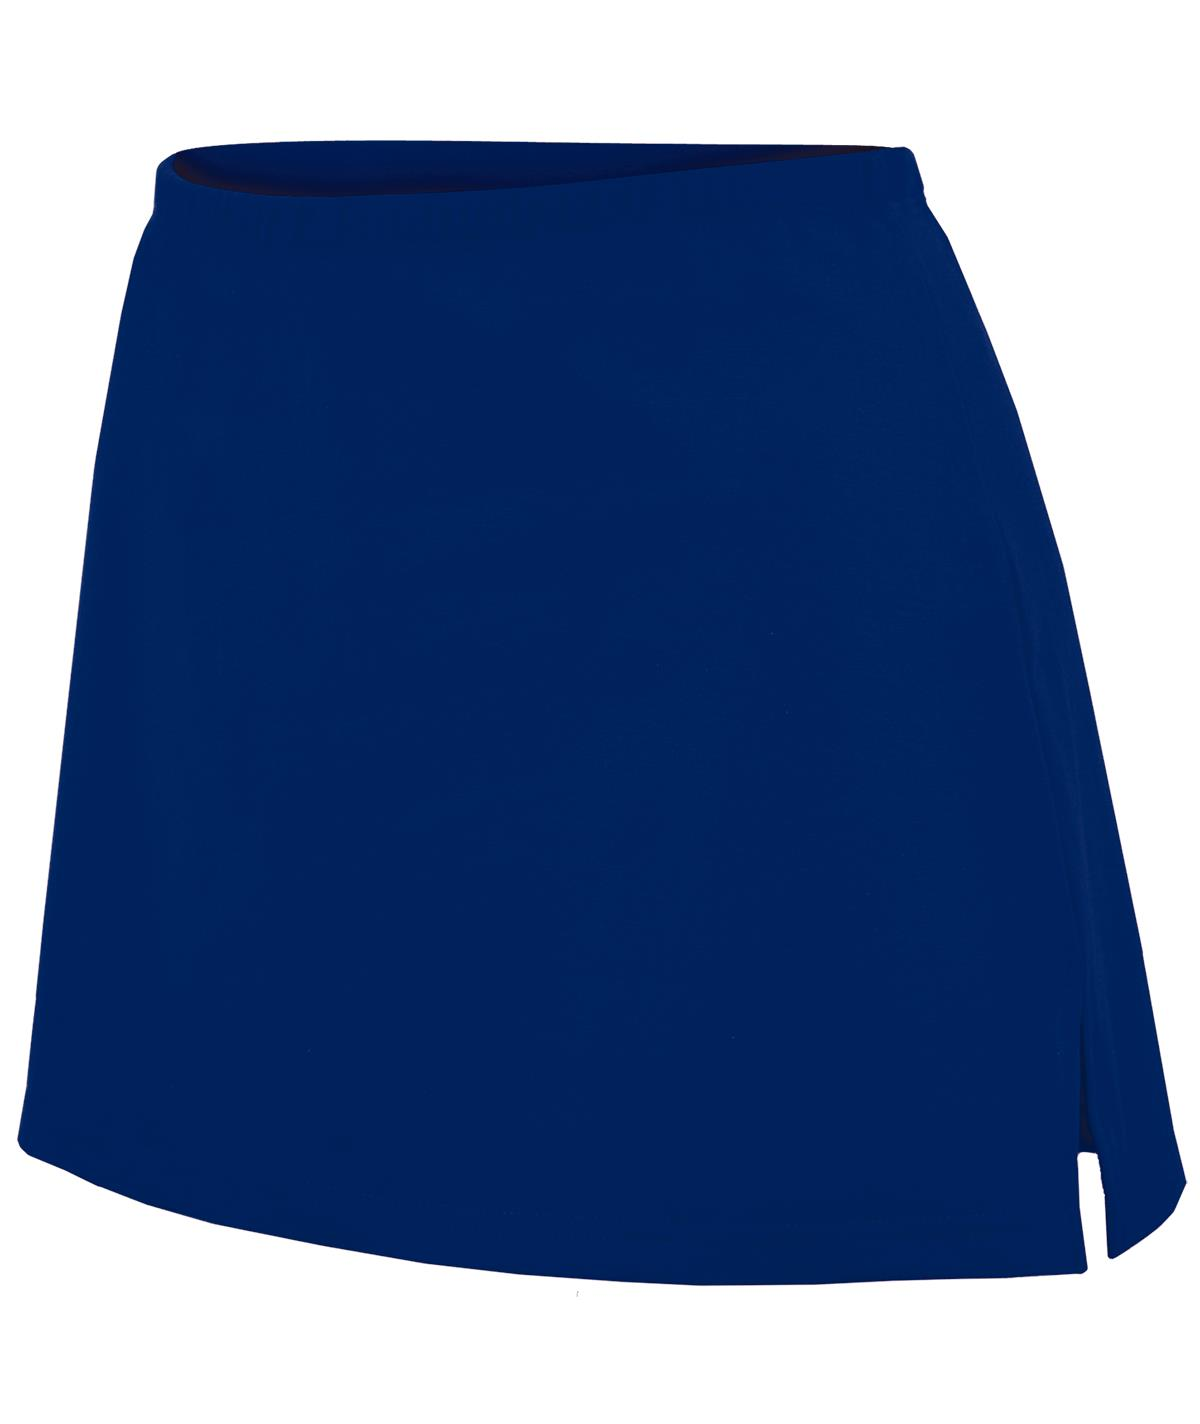 Chasse Skirt with Built-In Short